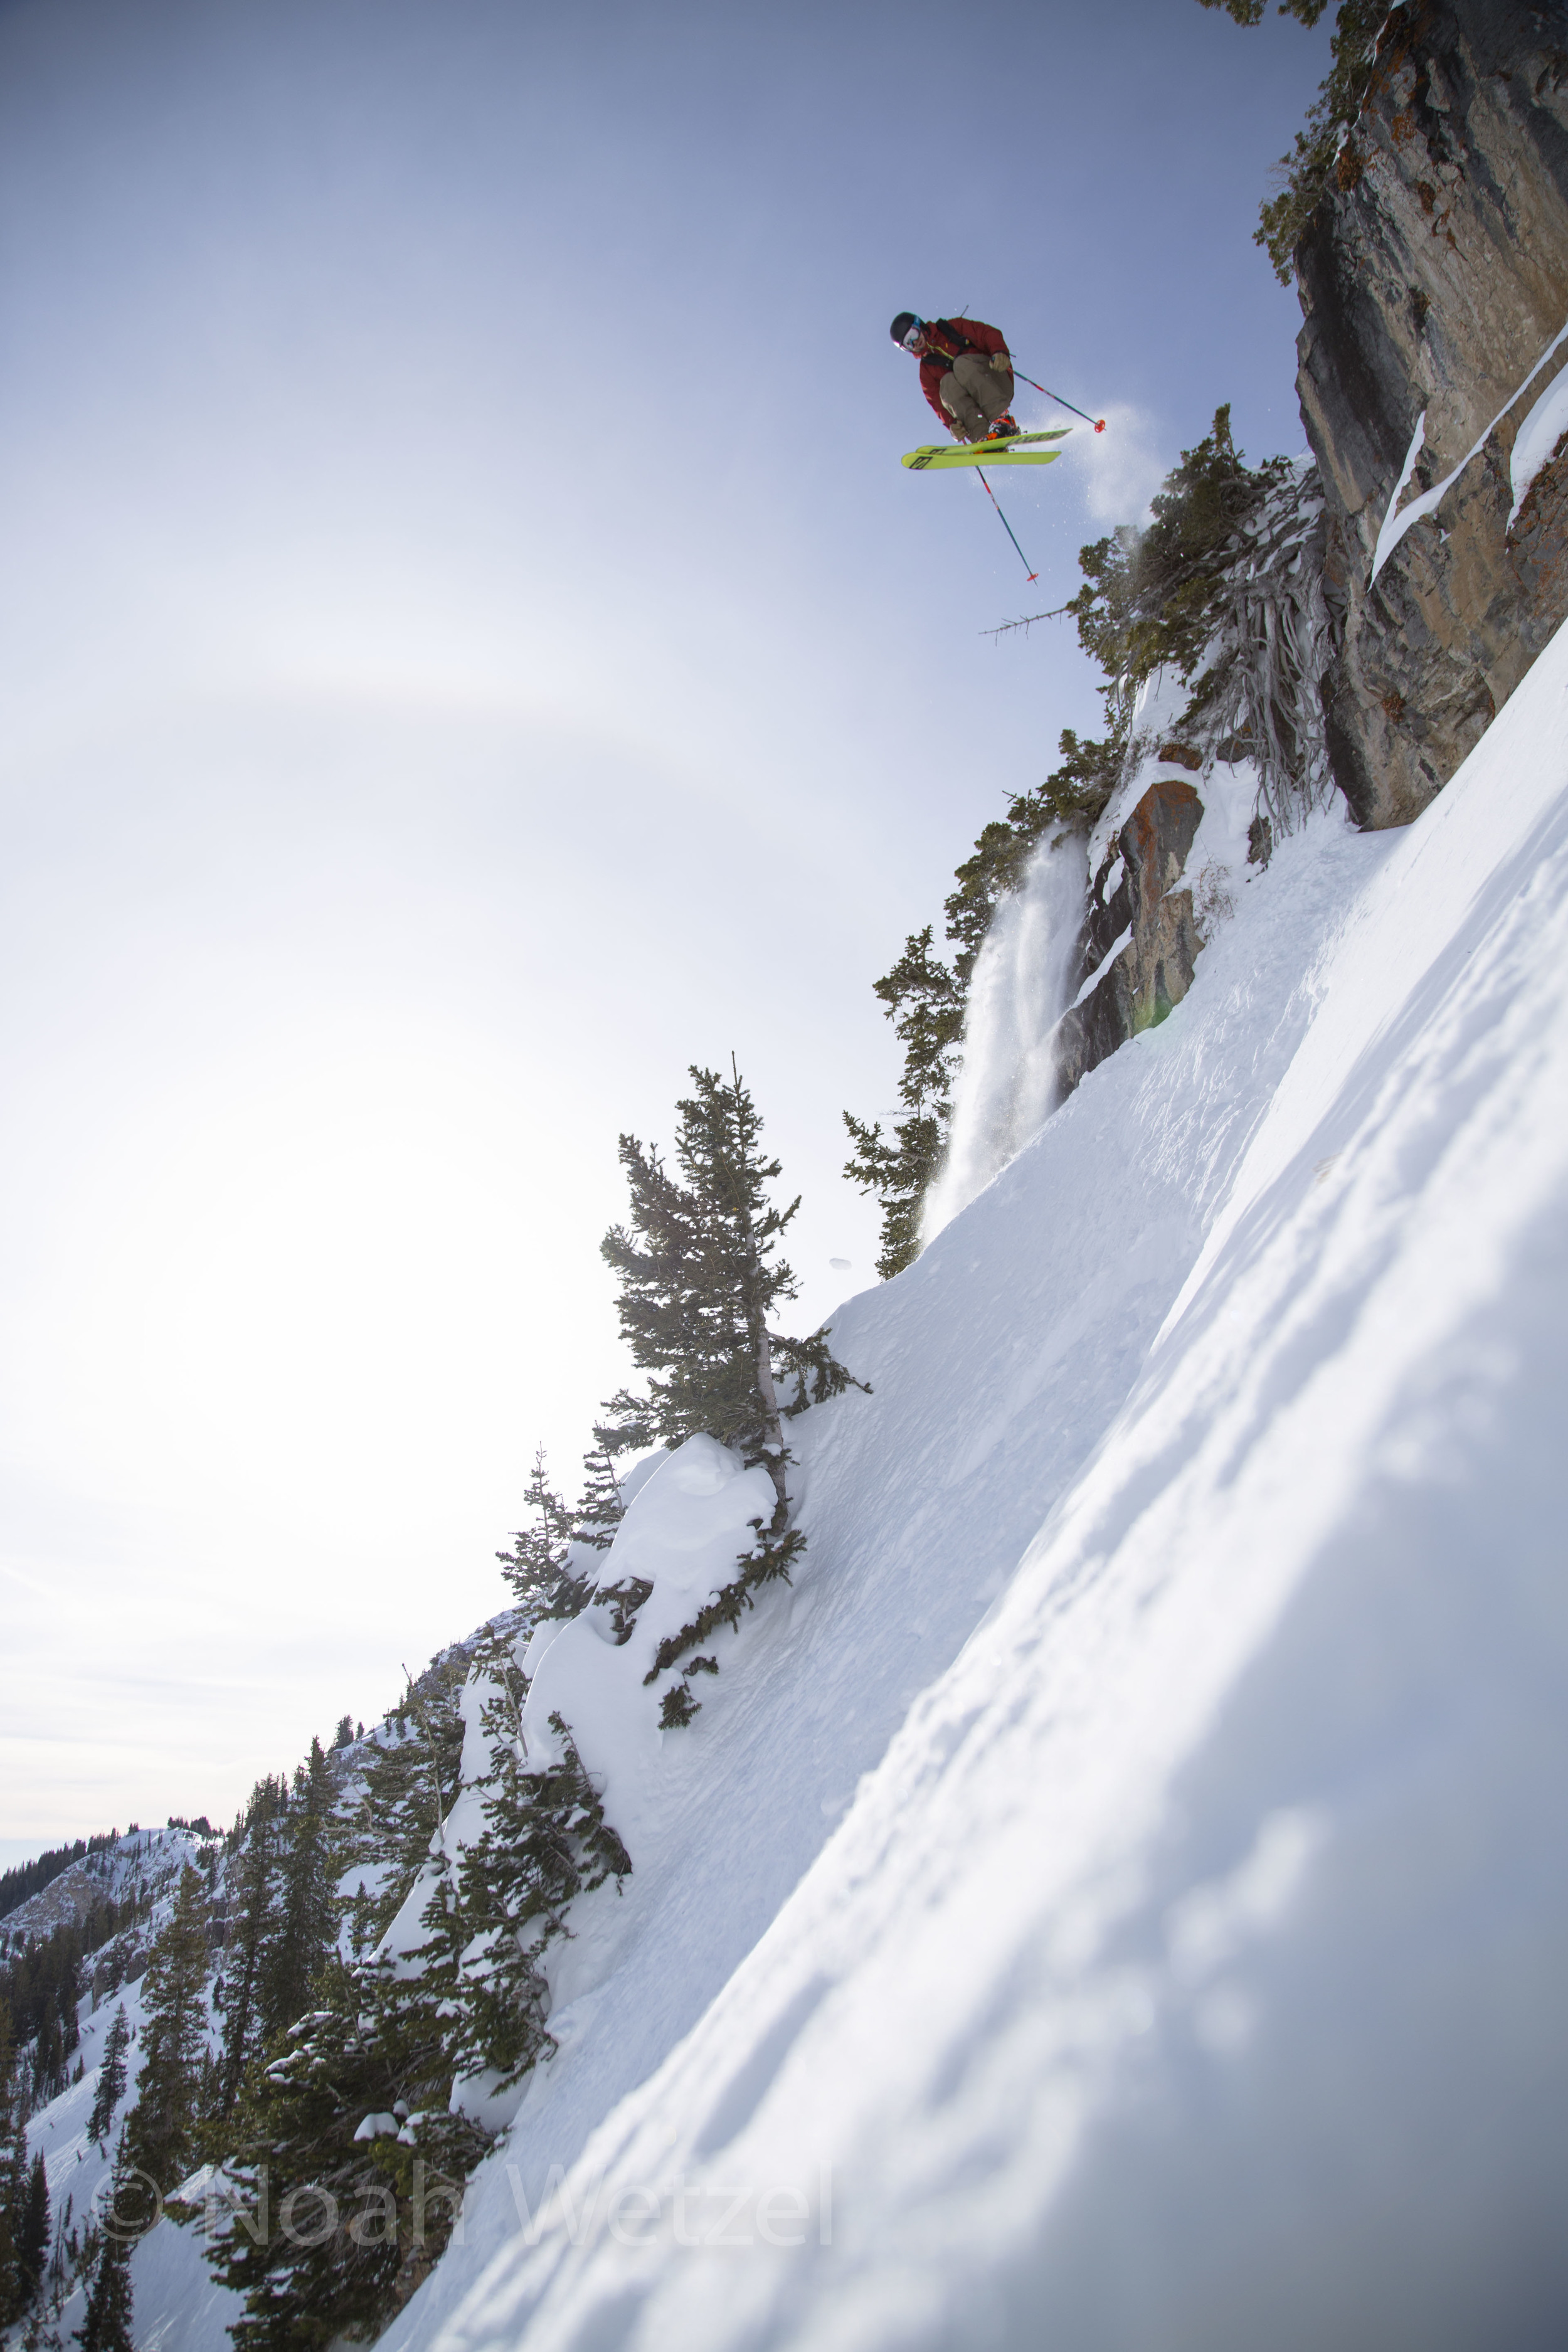 Chris Brule airing it out at Snowbird Resort, Utah.